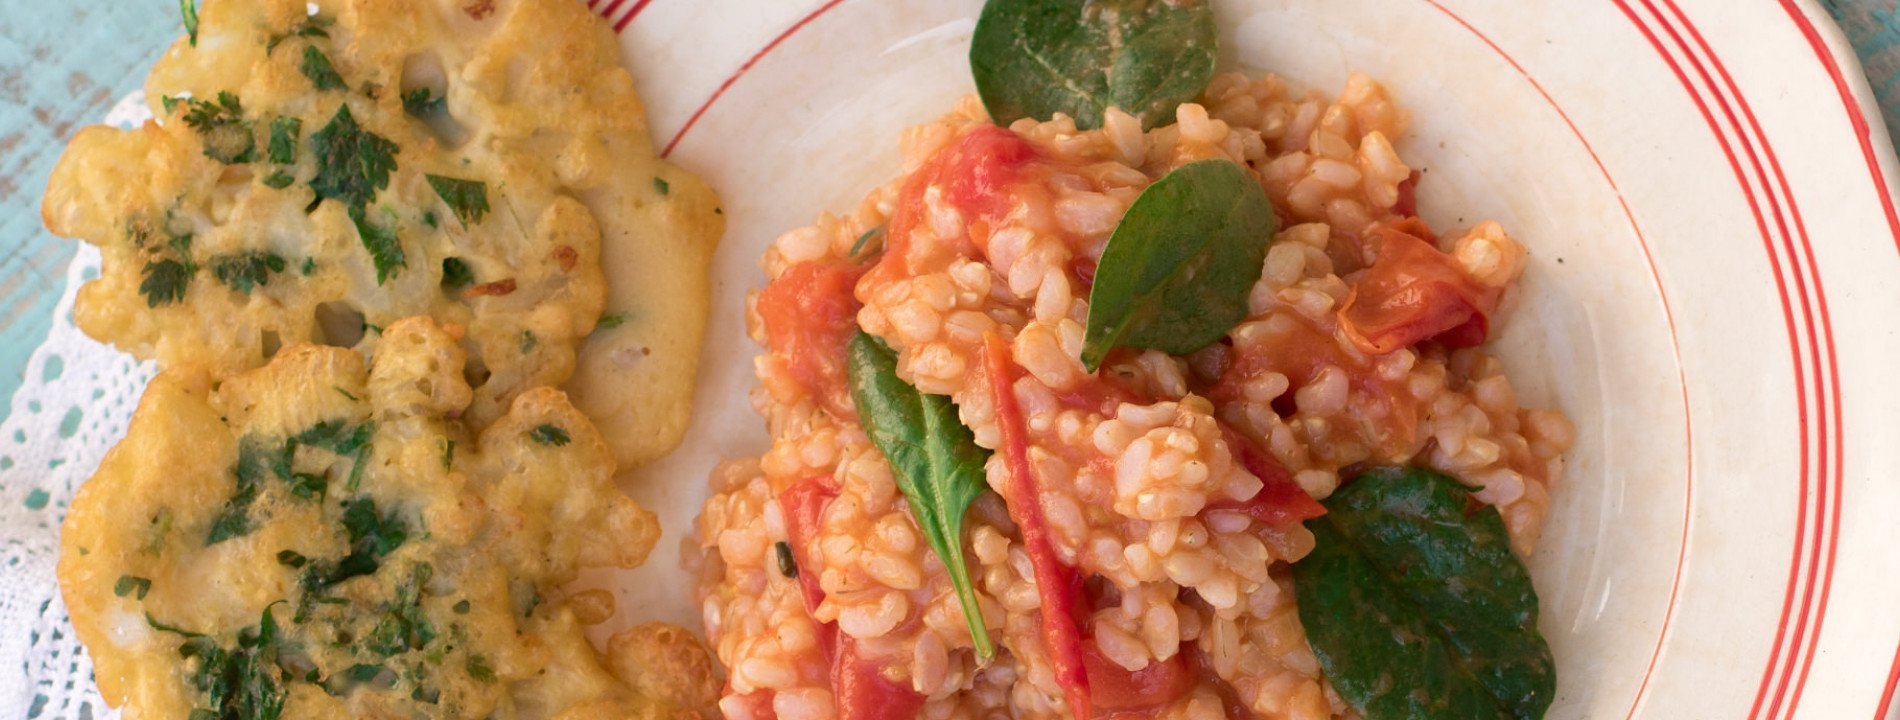 Chickpeas Fried with Tomato Rice